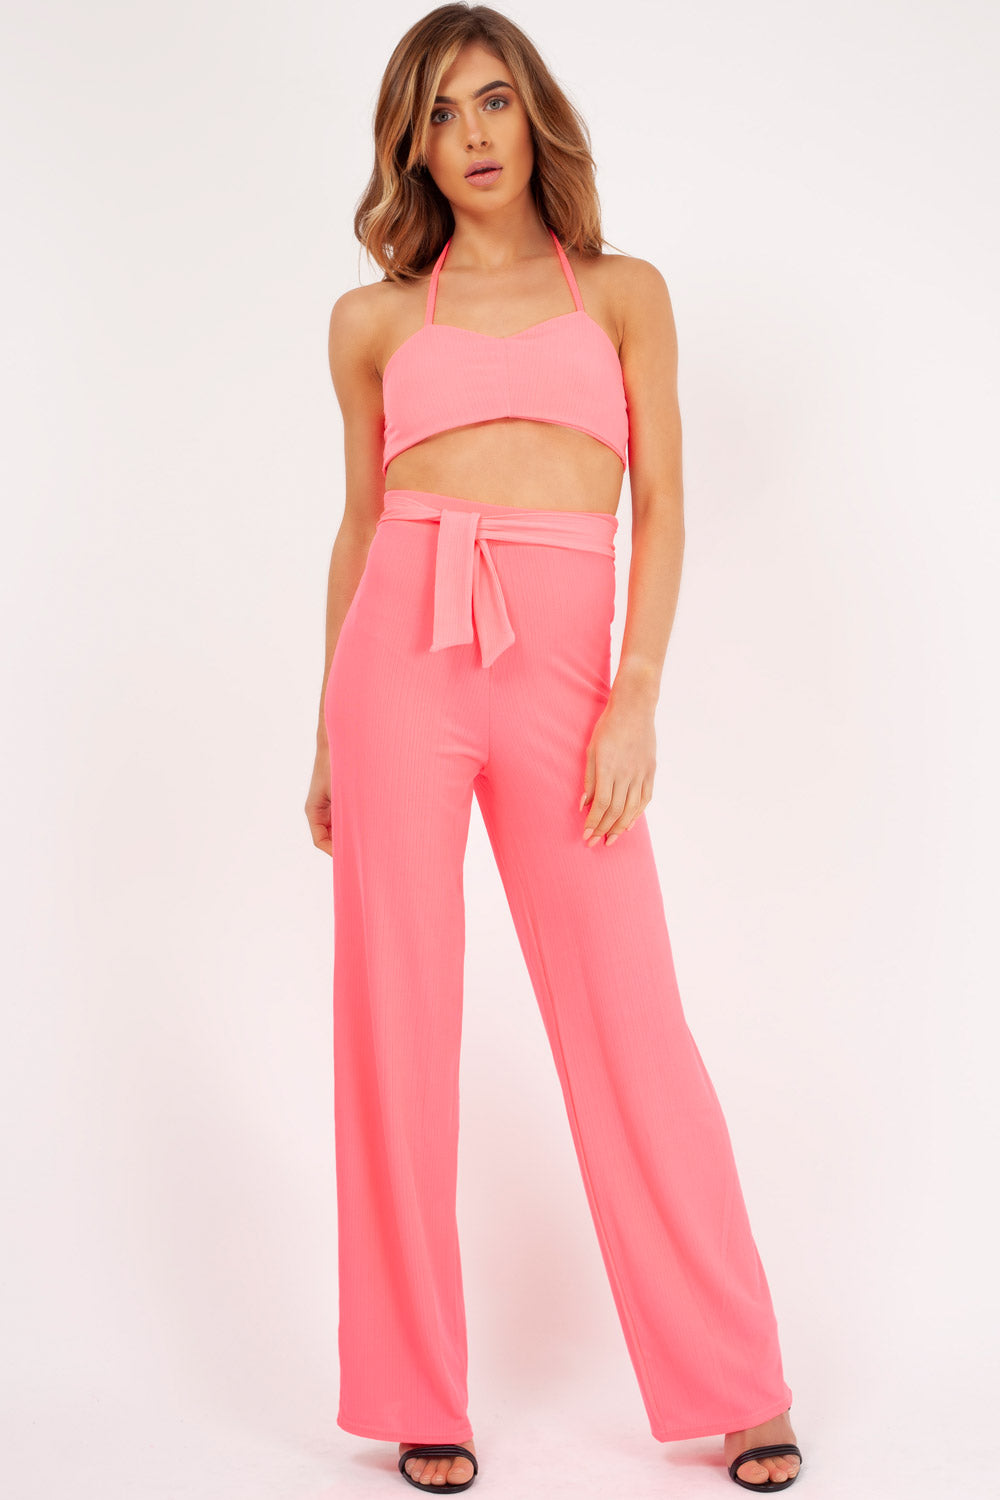 neon pink co ord